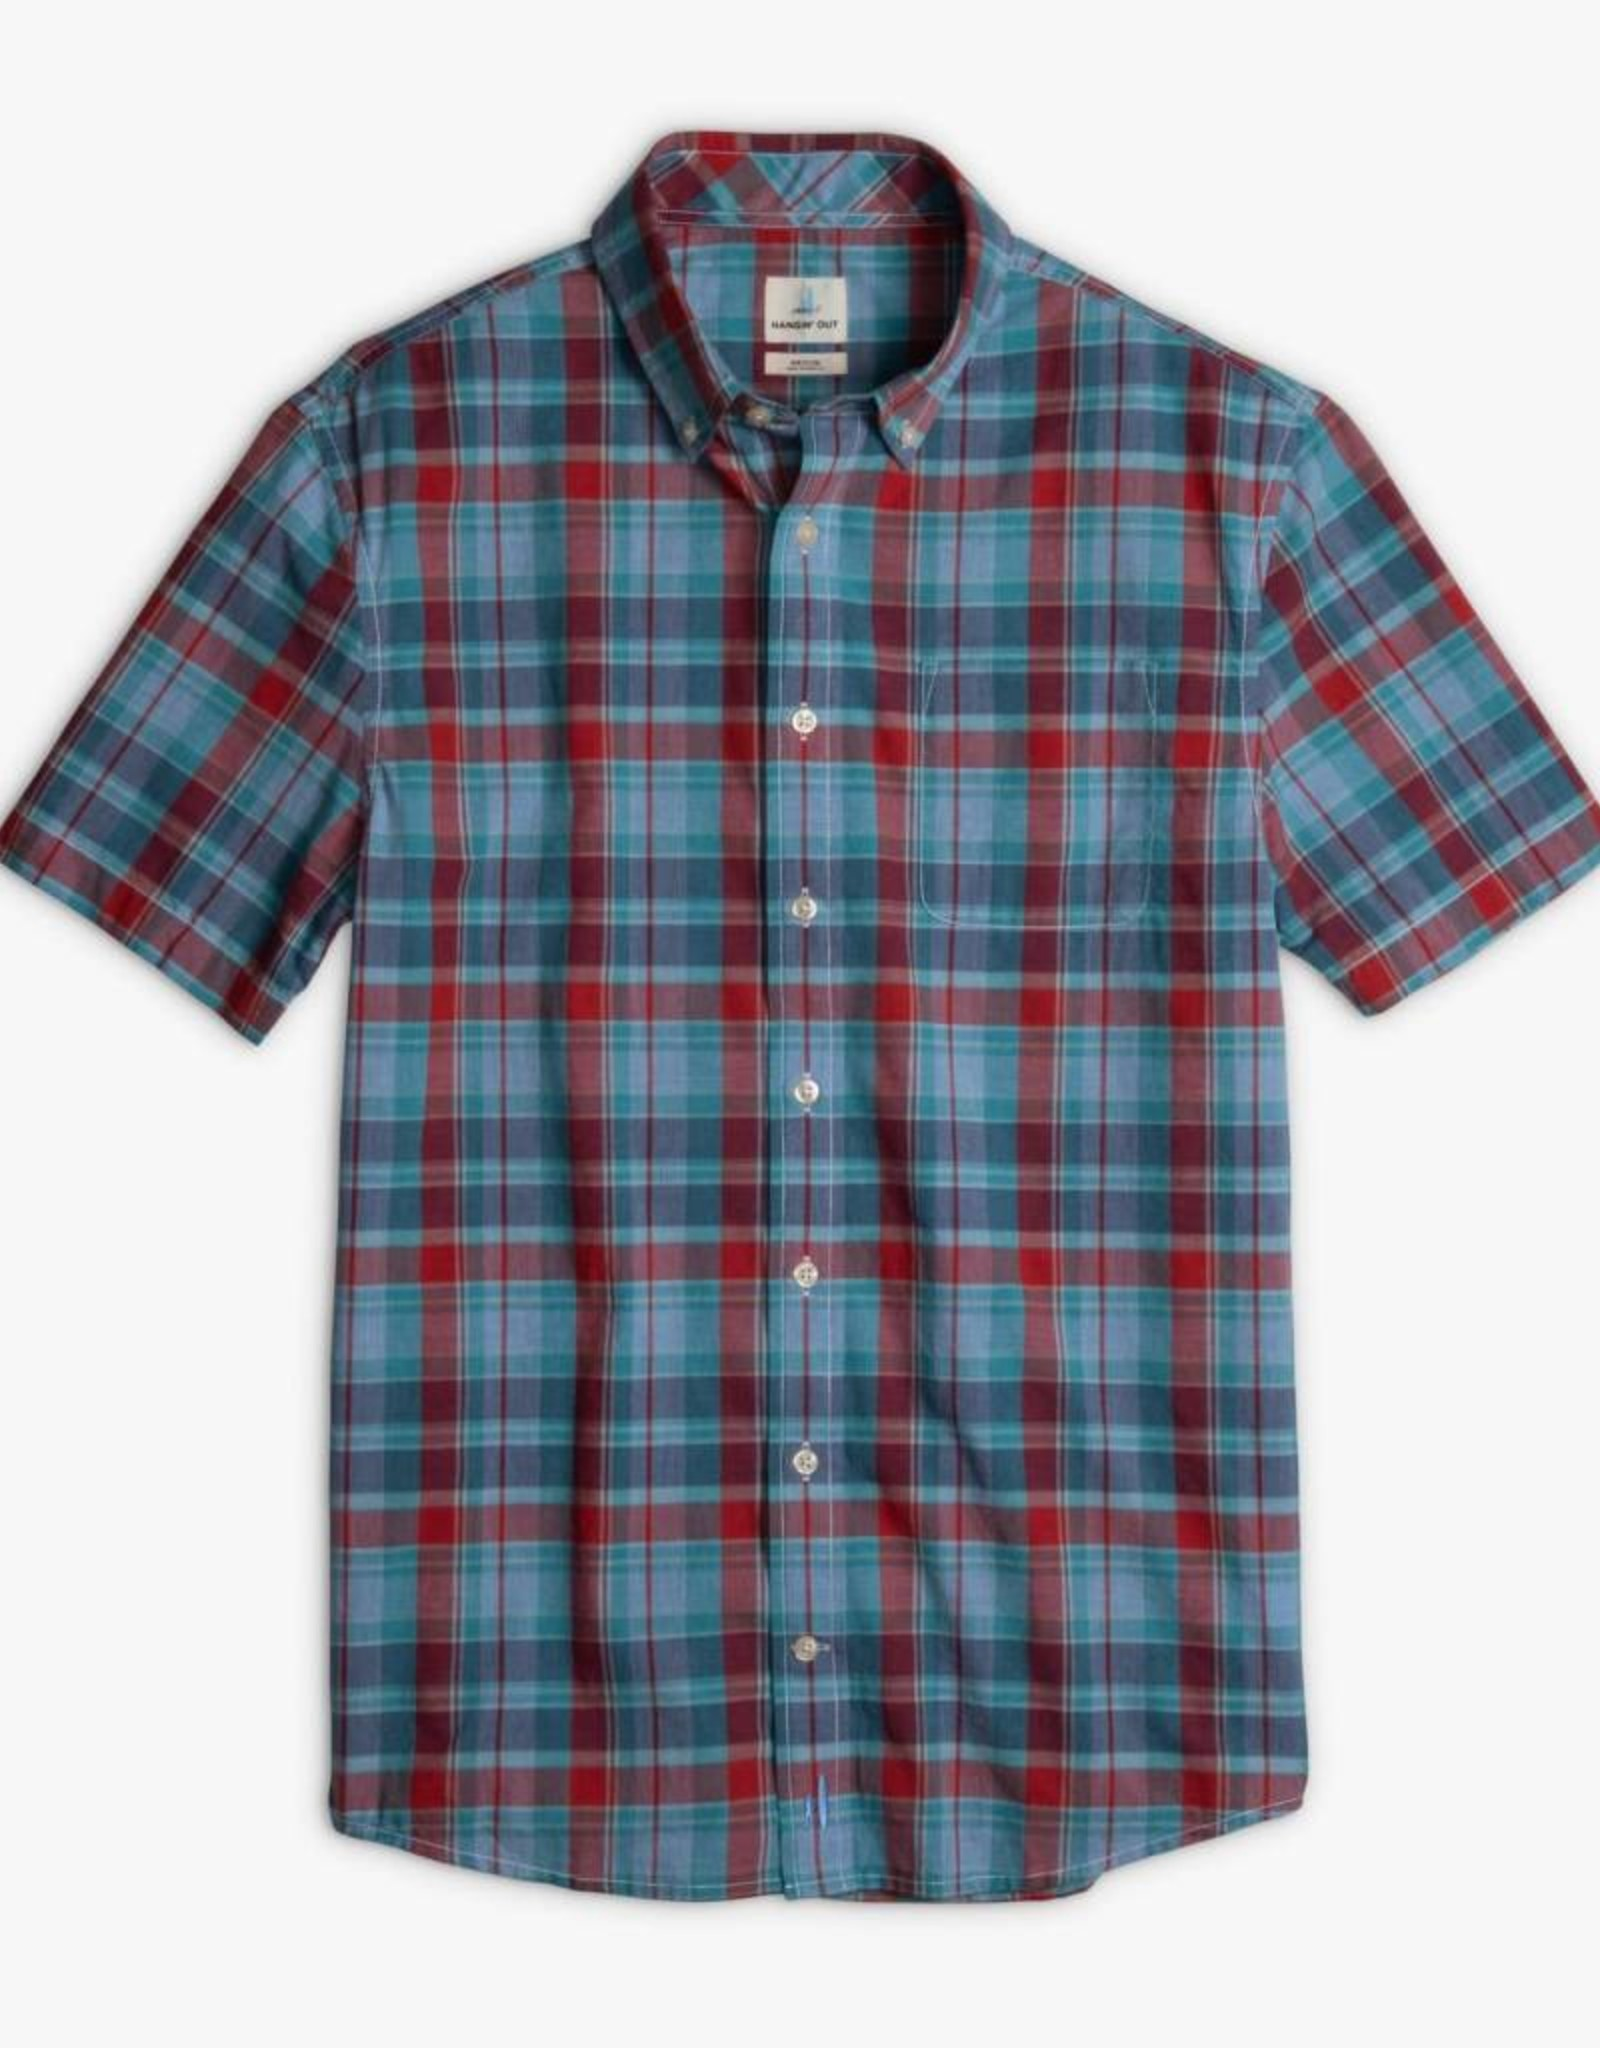 Johnnie-O Alva Hangin' Out Short Sleeve Button Down Shirt